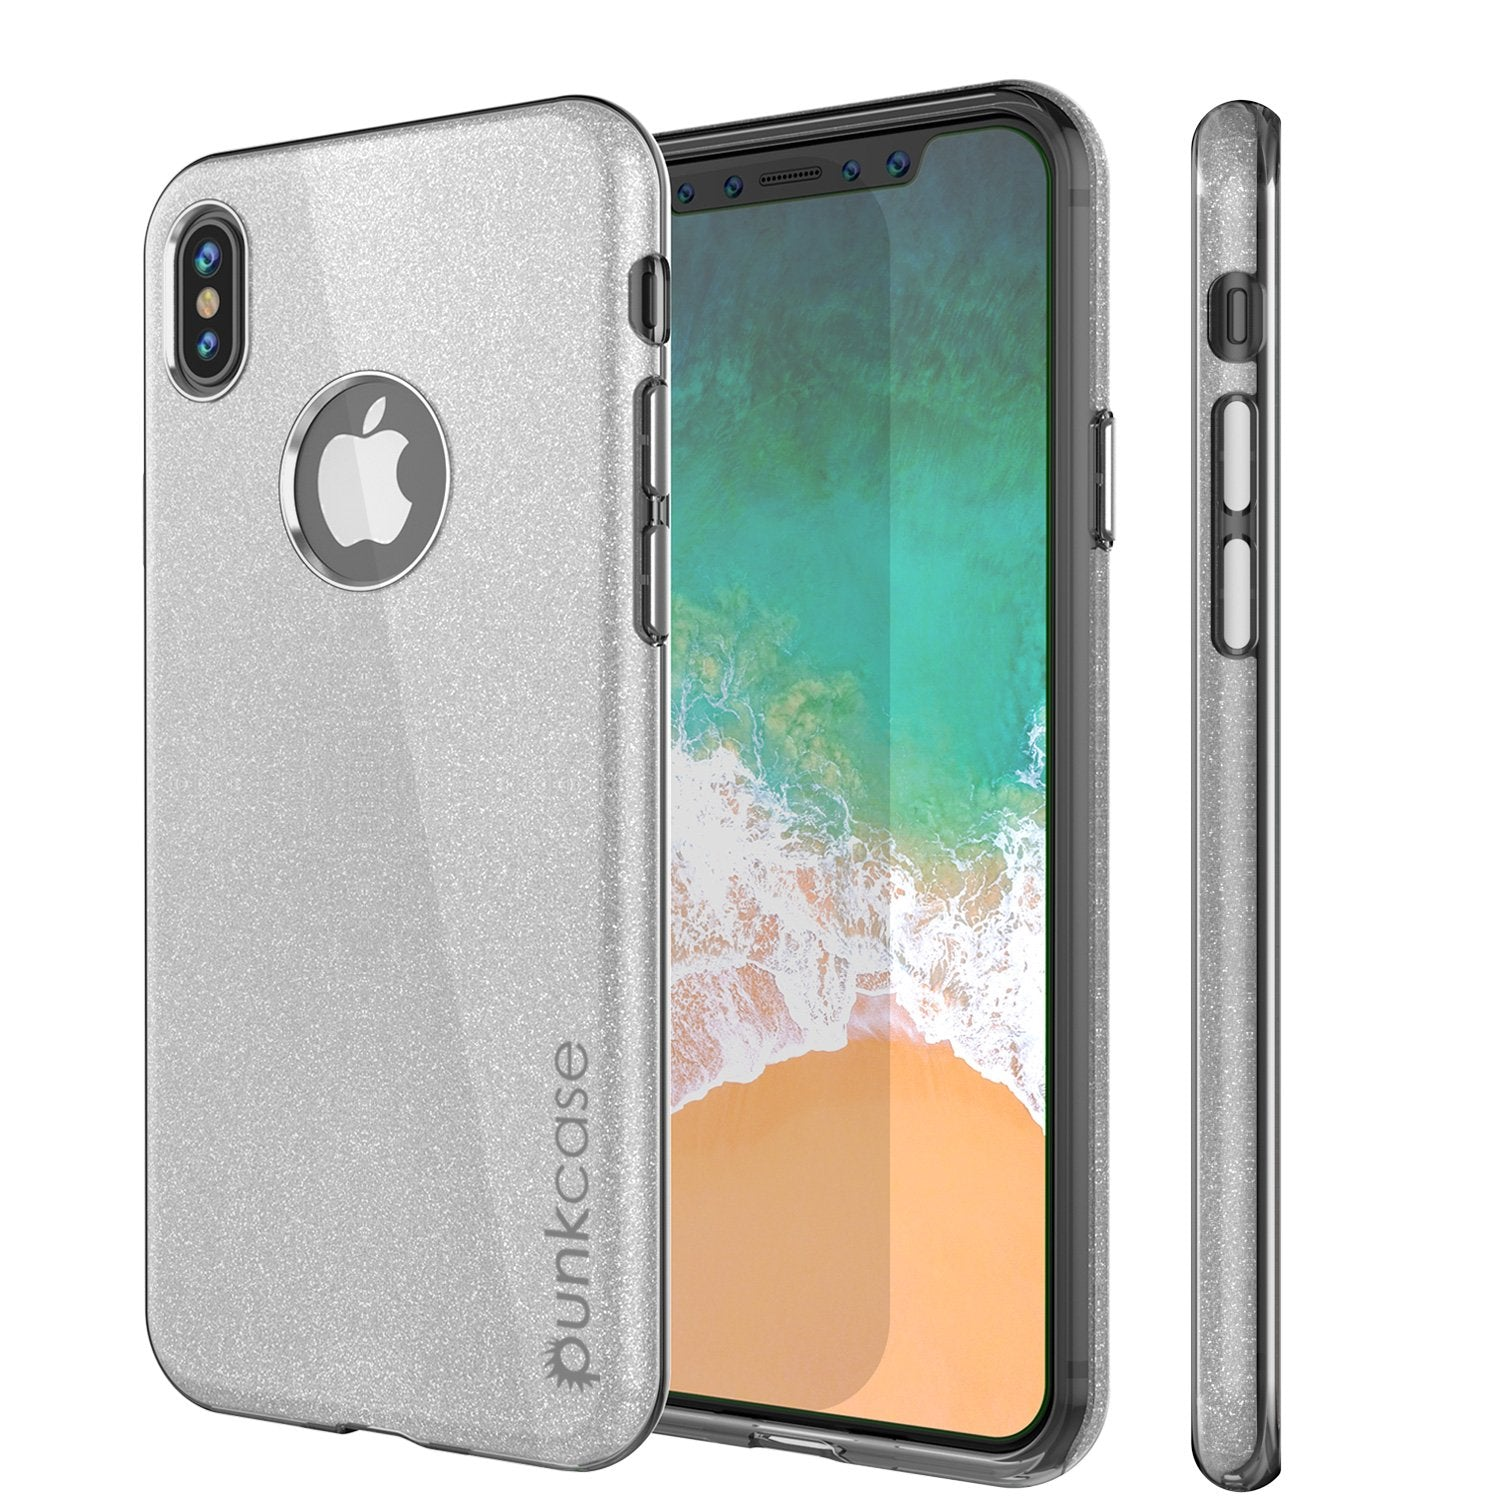 iPhone X Case, Punkcase Galactic 2.0 Series Ultra Slim Cover [Silver]